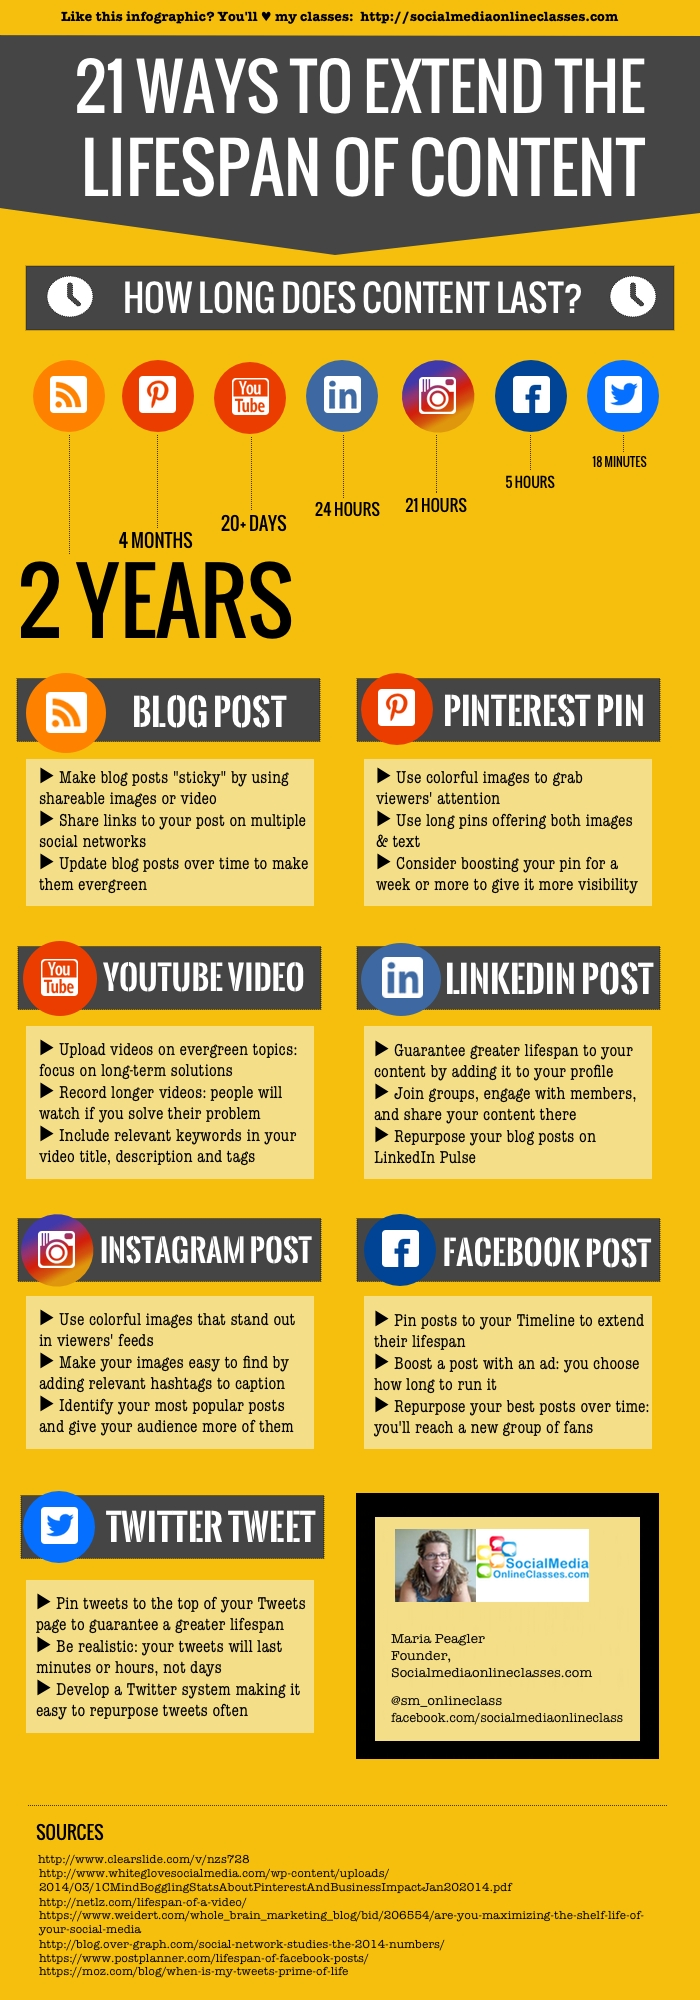 infographic-content-marketing-strategy-21-ways-to-extend-your-content.jpg.jpg